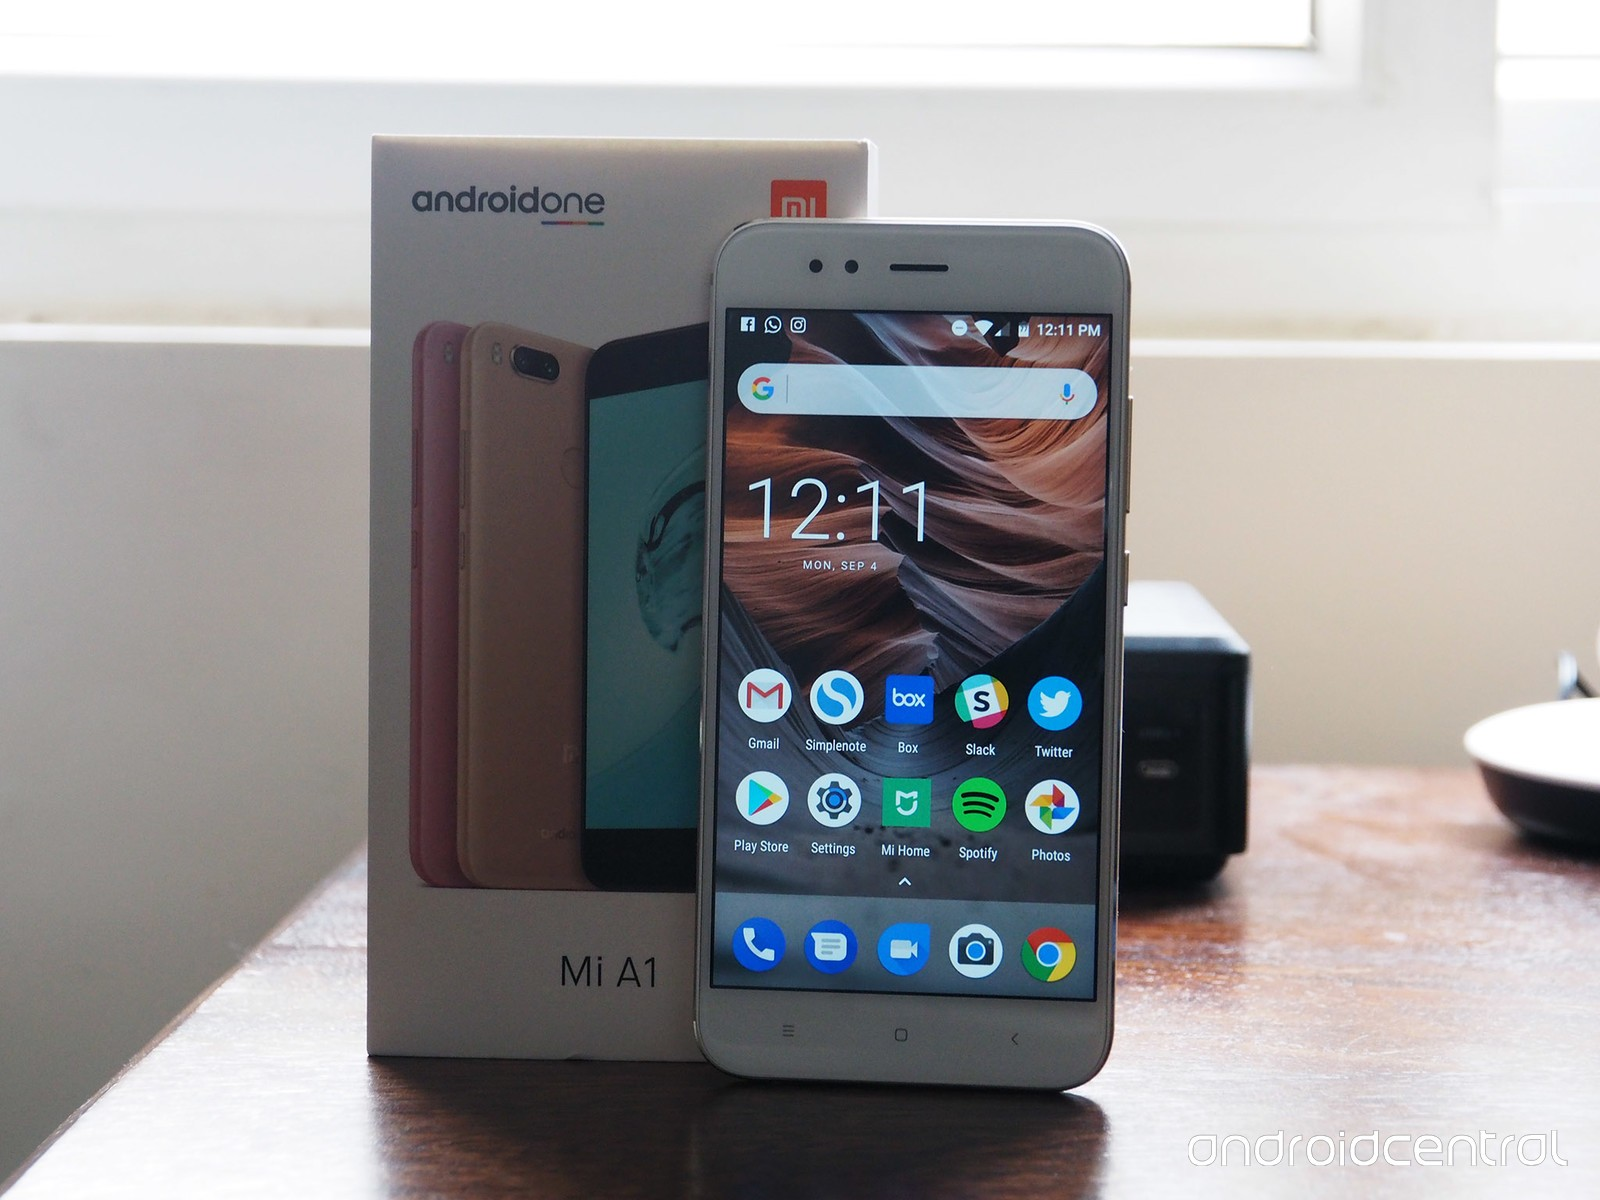 Xiaomi Mi A1 Features Androidone With Picture Perfect Dual